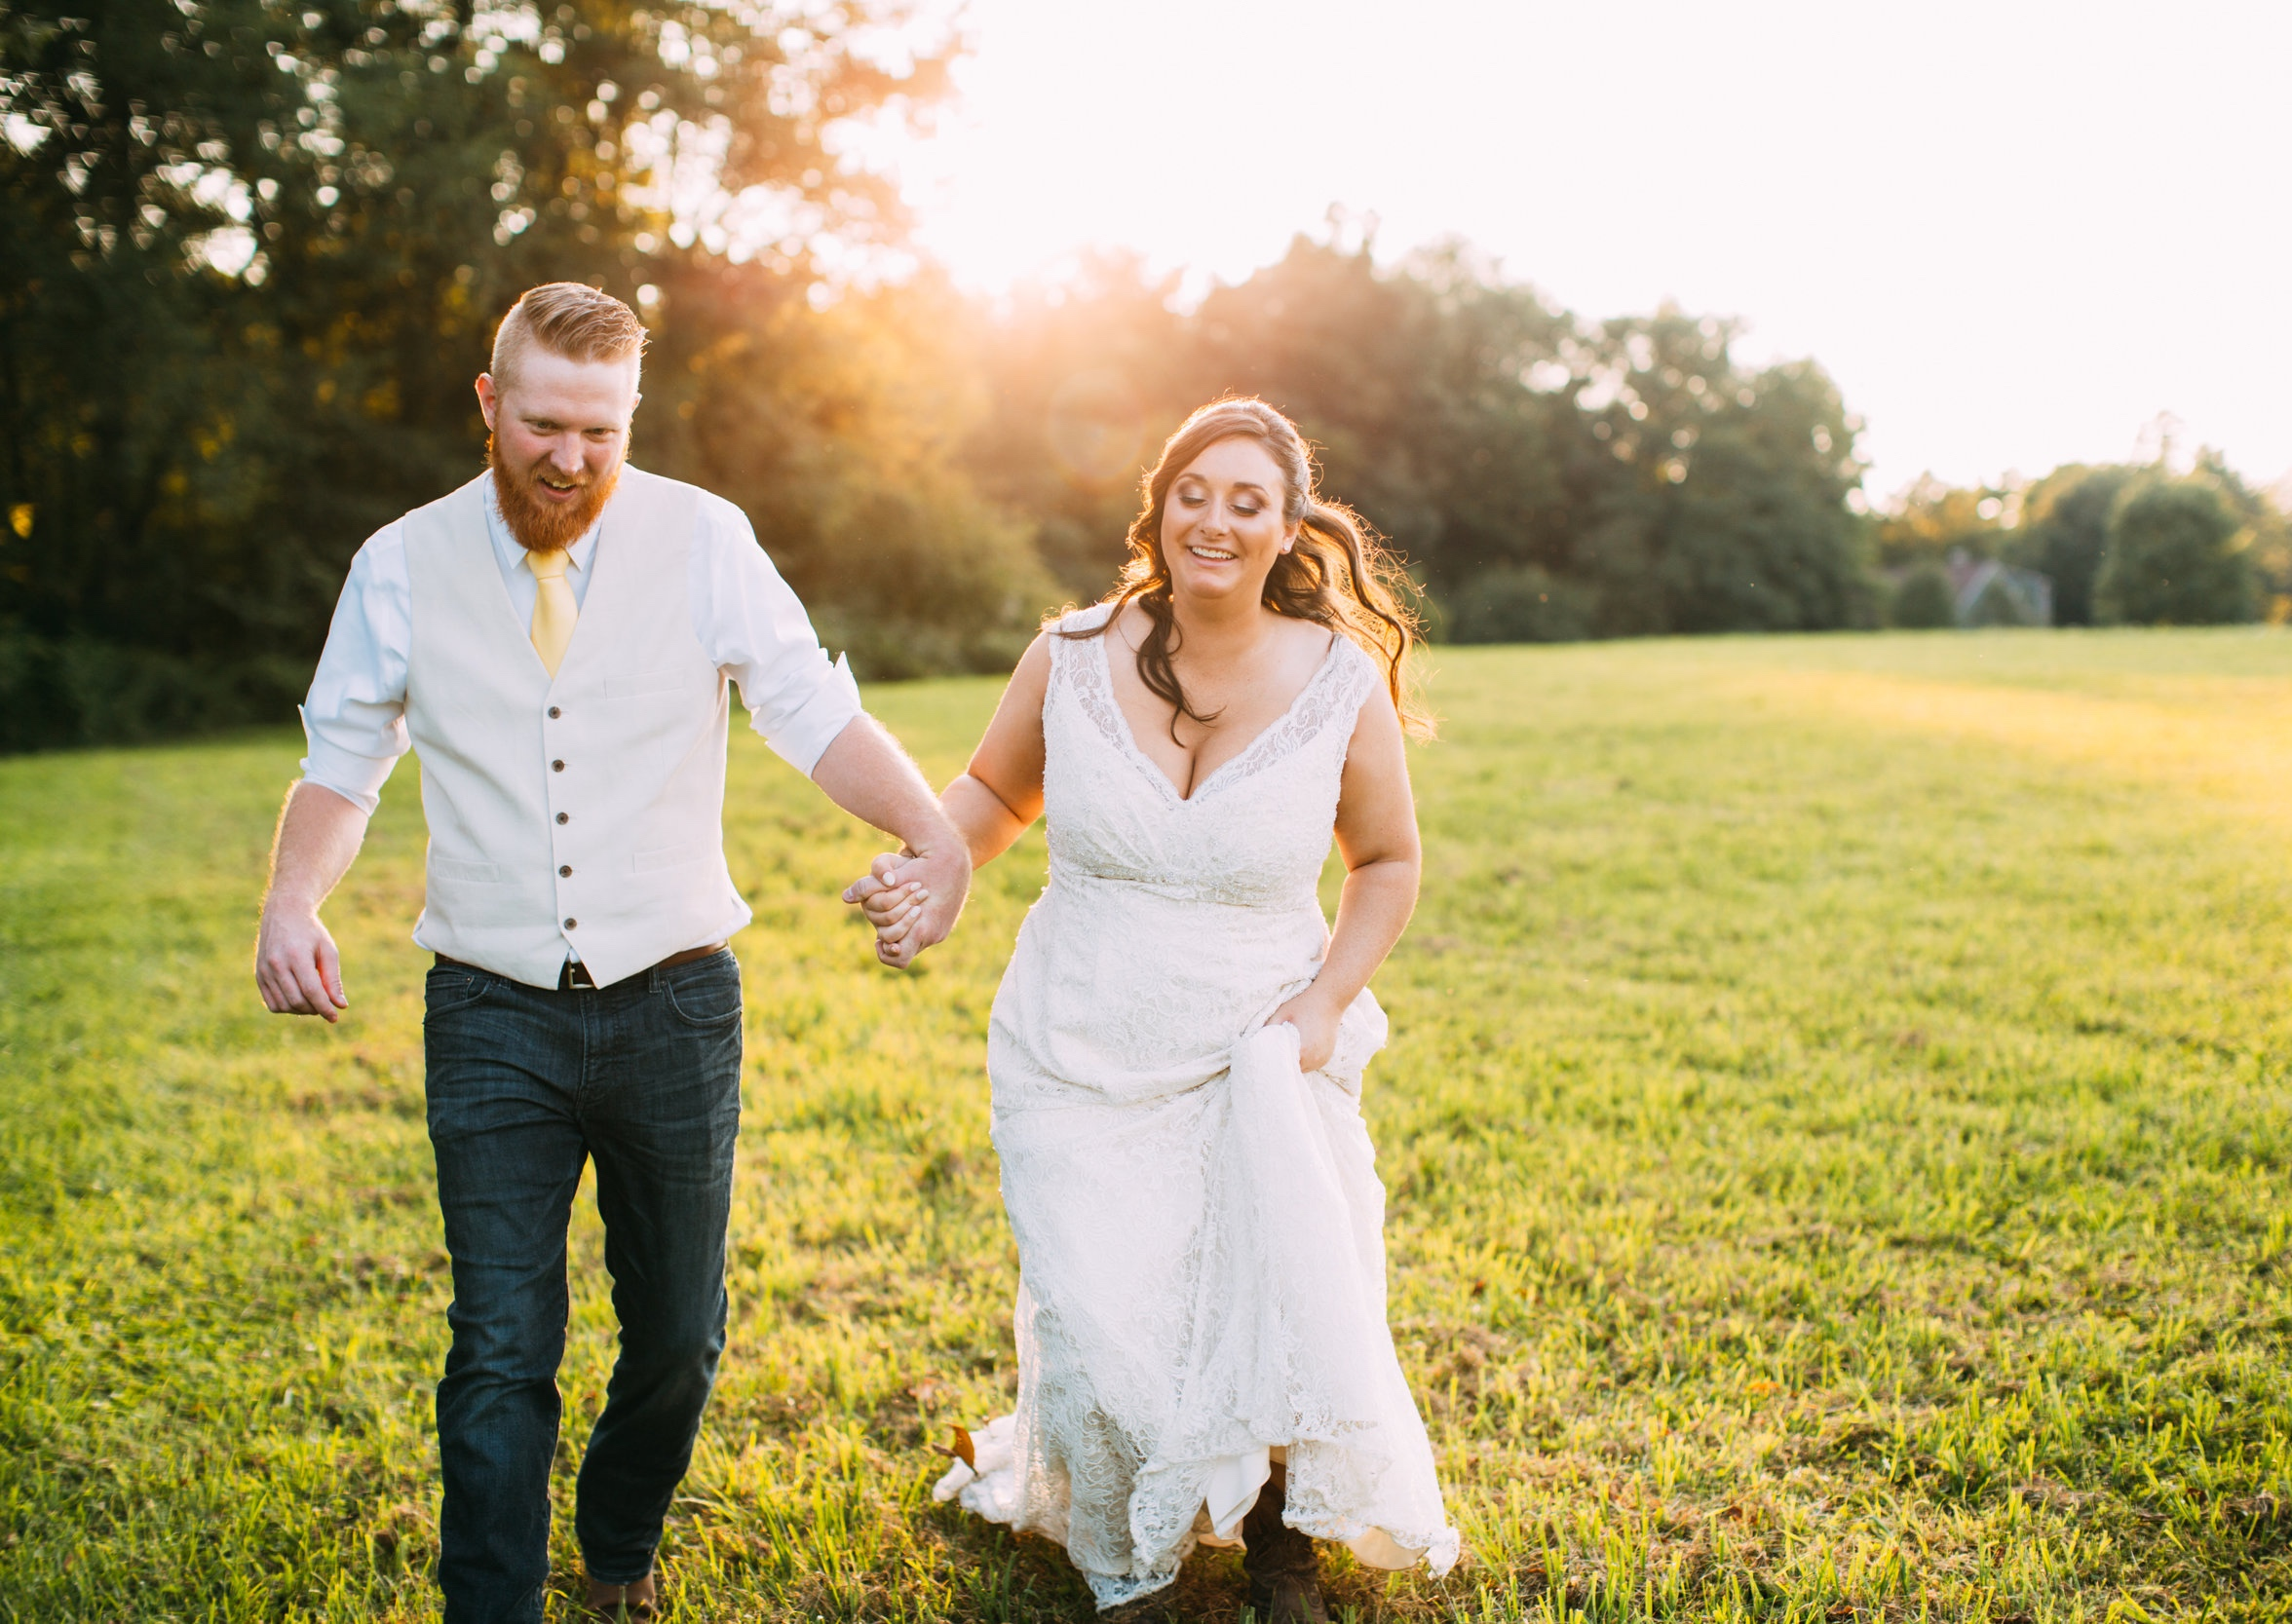 """""""She is so friendly and made me feel very comfortable"""" - Kristin is amazing! She did my engagement and wedding pictures and they came out better than I could have ever imagined. She is so friendly and made me feel very comfortable.- Nicole, Copley OH"""